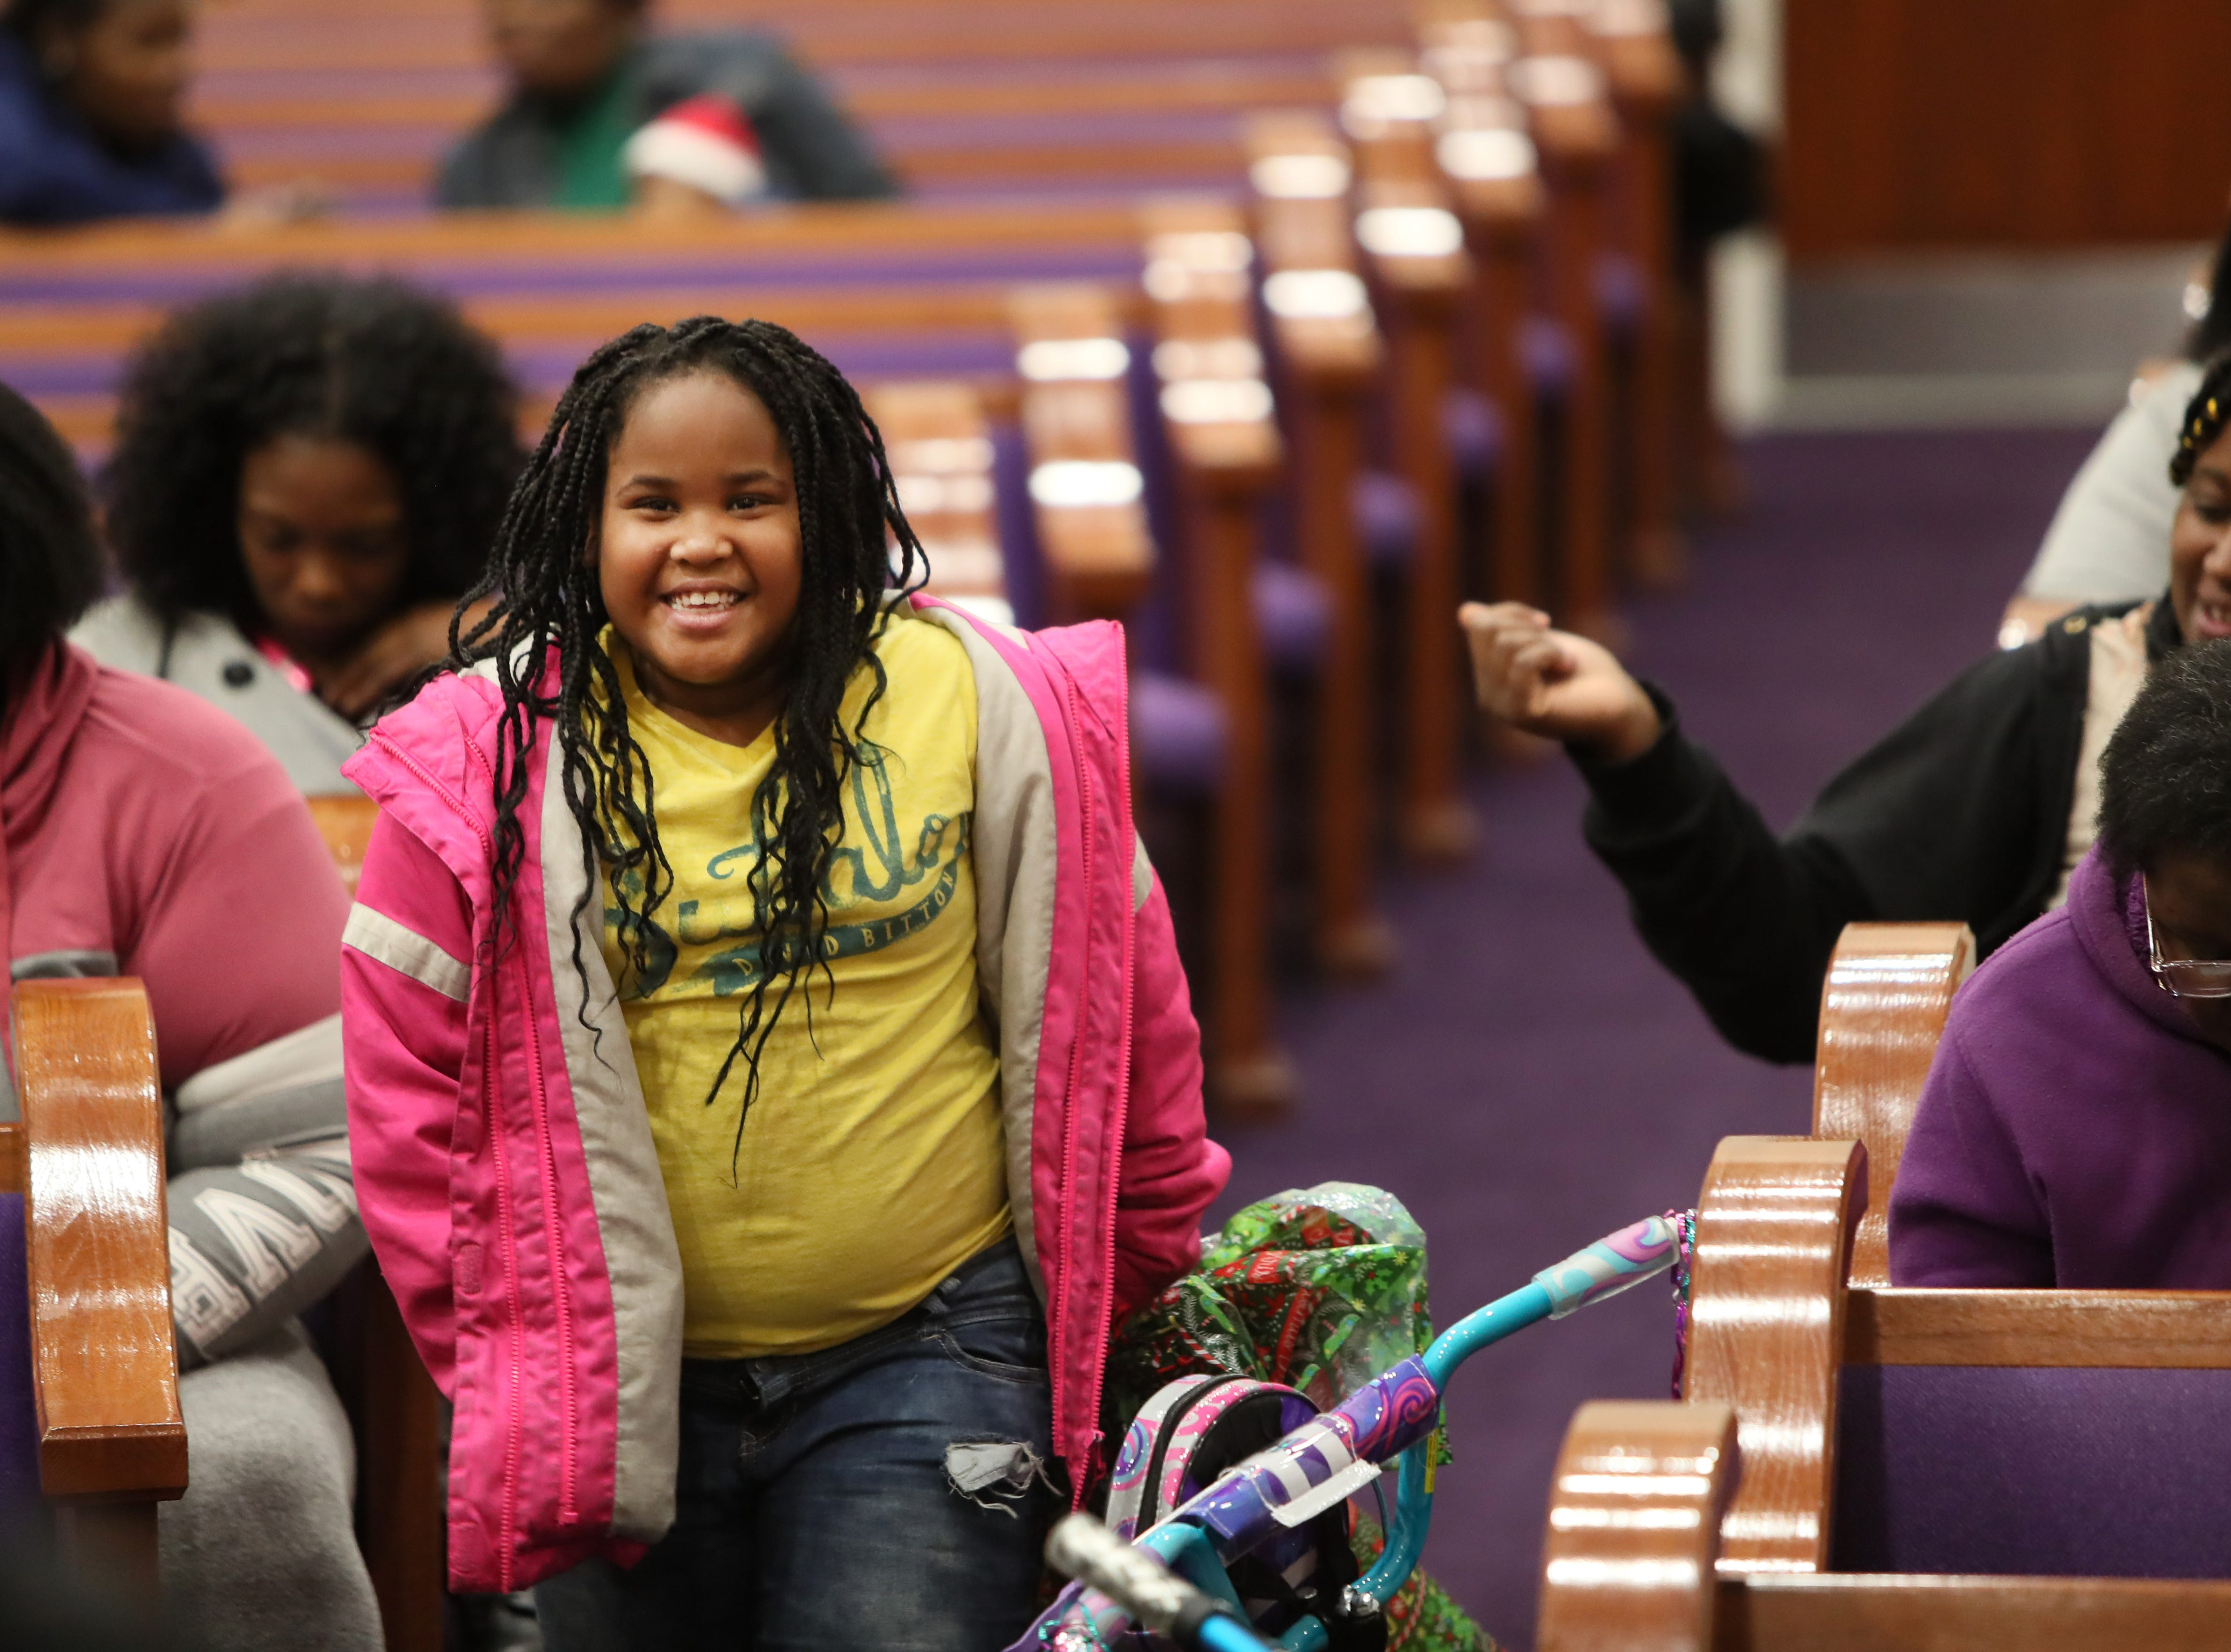 Natiyah Fason, 8, smiles as she receives a present from the MPD's Community Outreach Program at Grace Missionary Baptist Church on Thursday, Dec. 20, 2018.